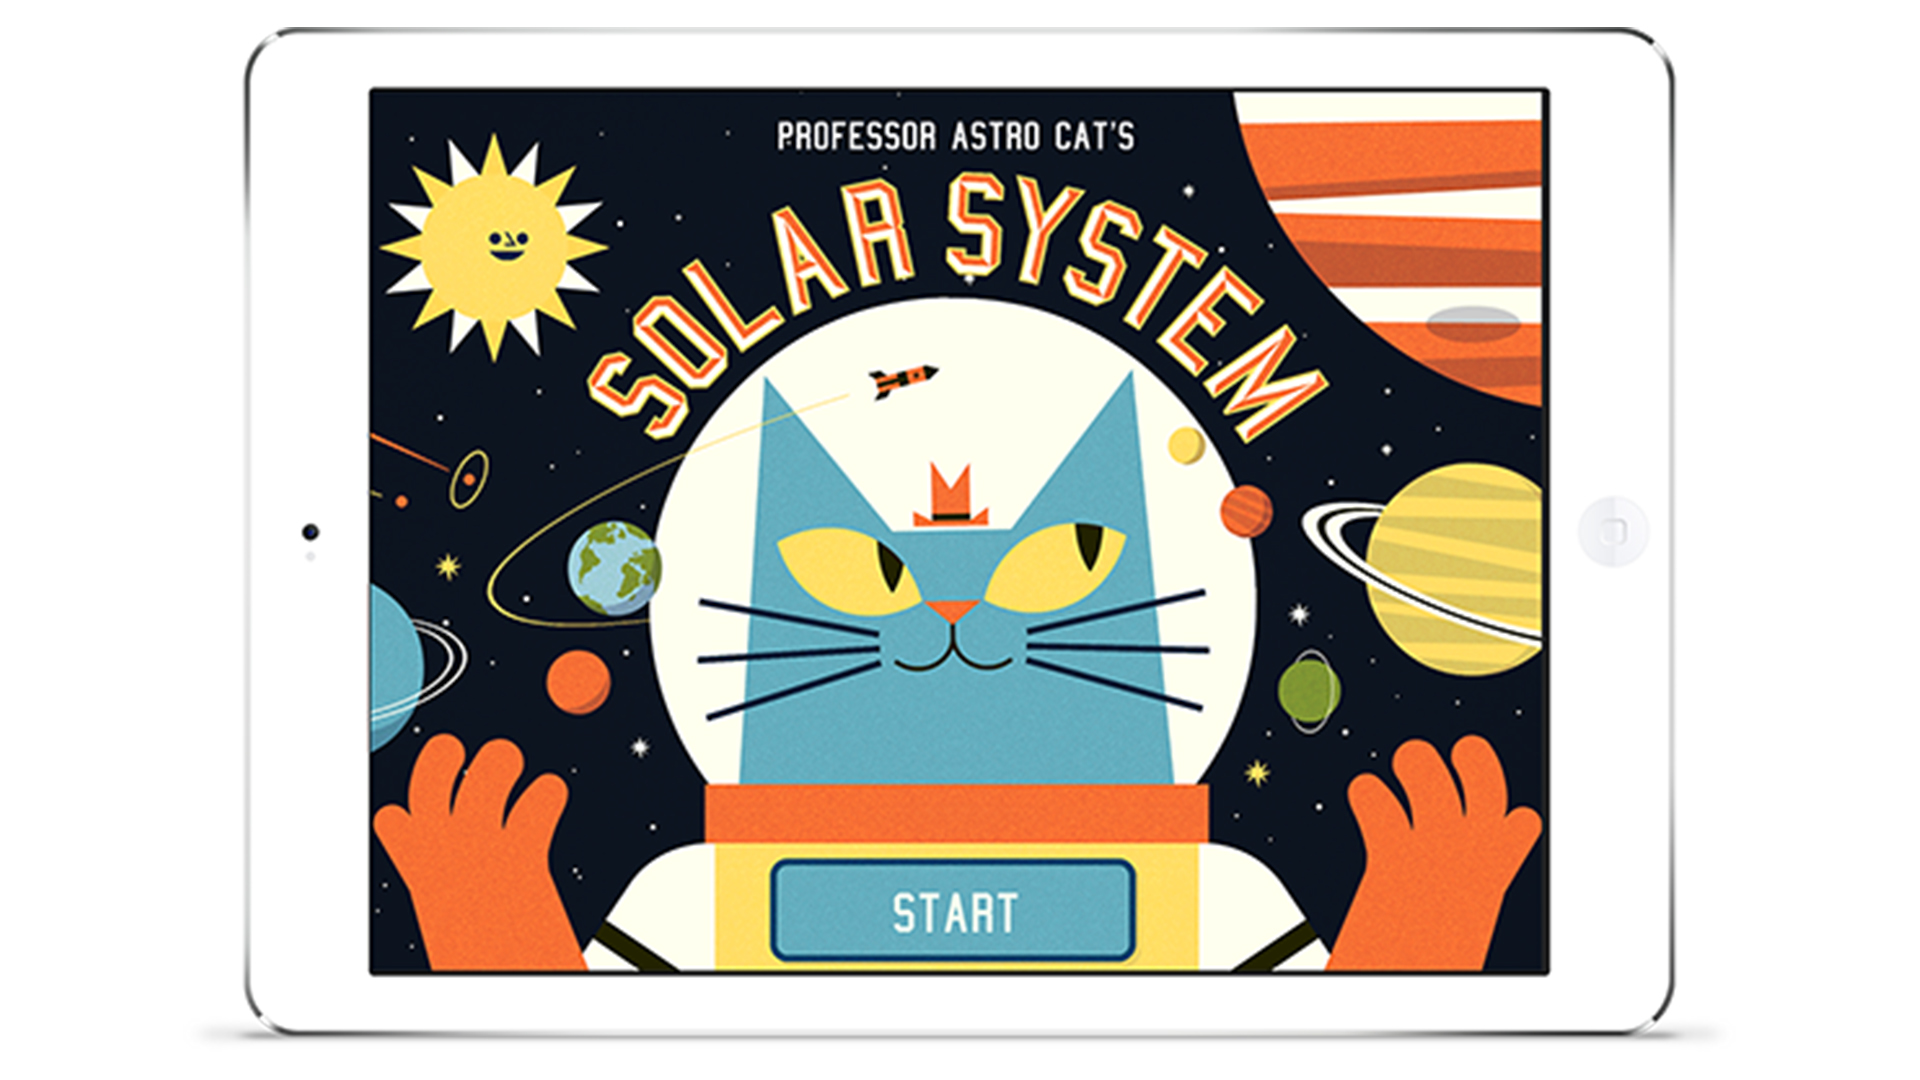 Professor Astro Cat's Solar System start screen in iPad